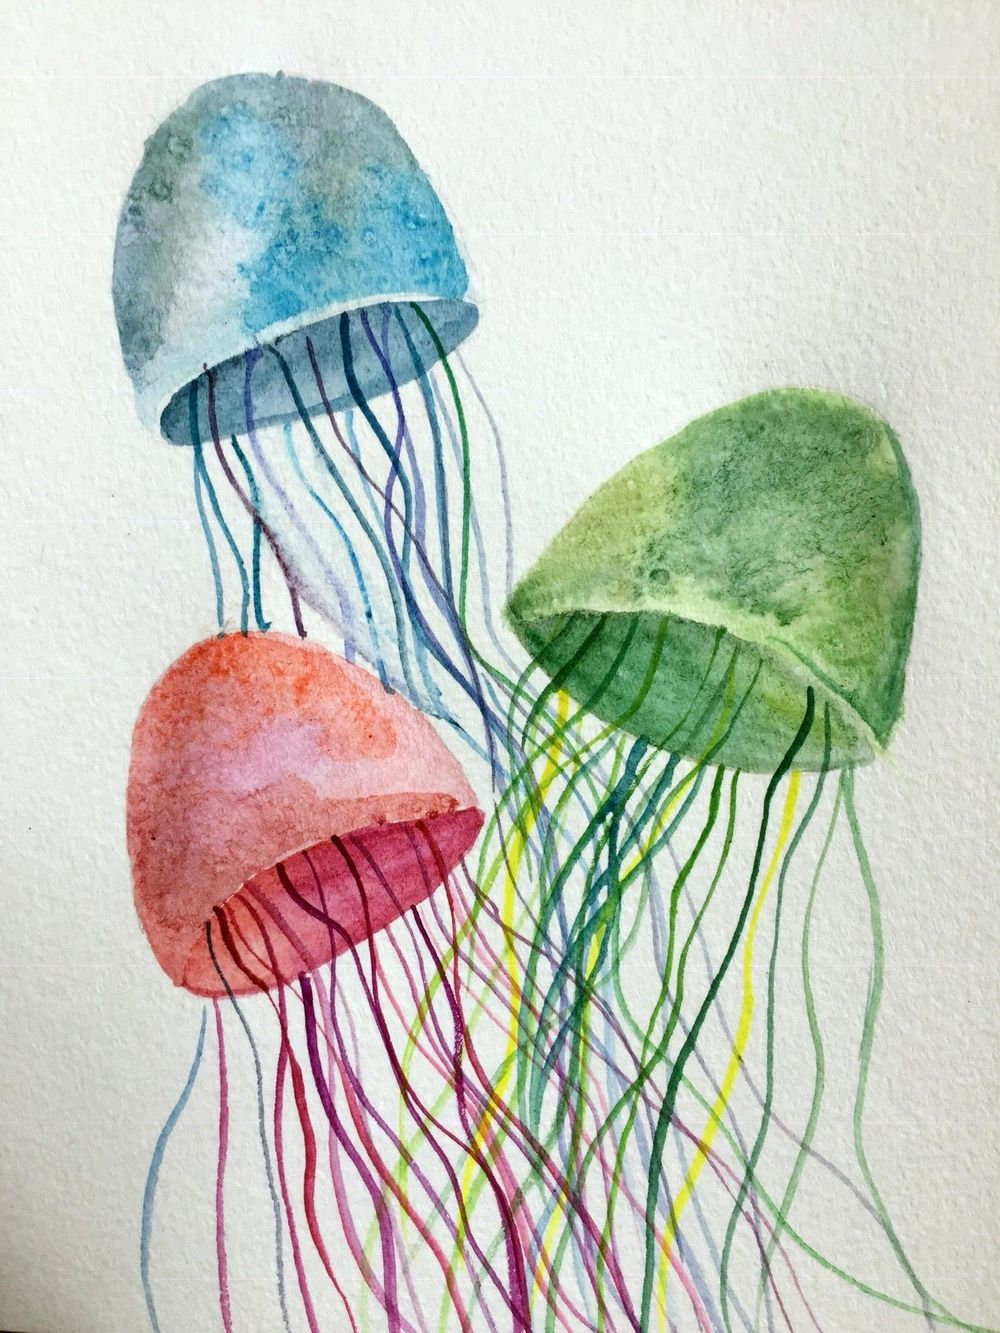 Jellyfish - image 1 - student project